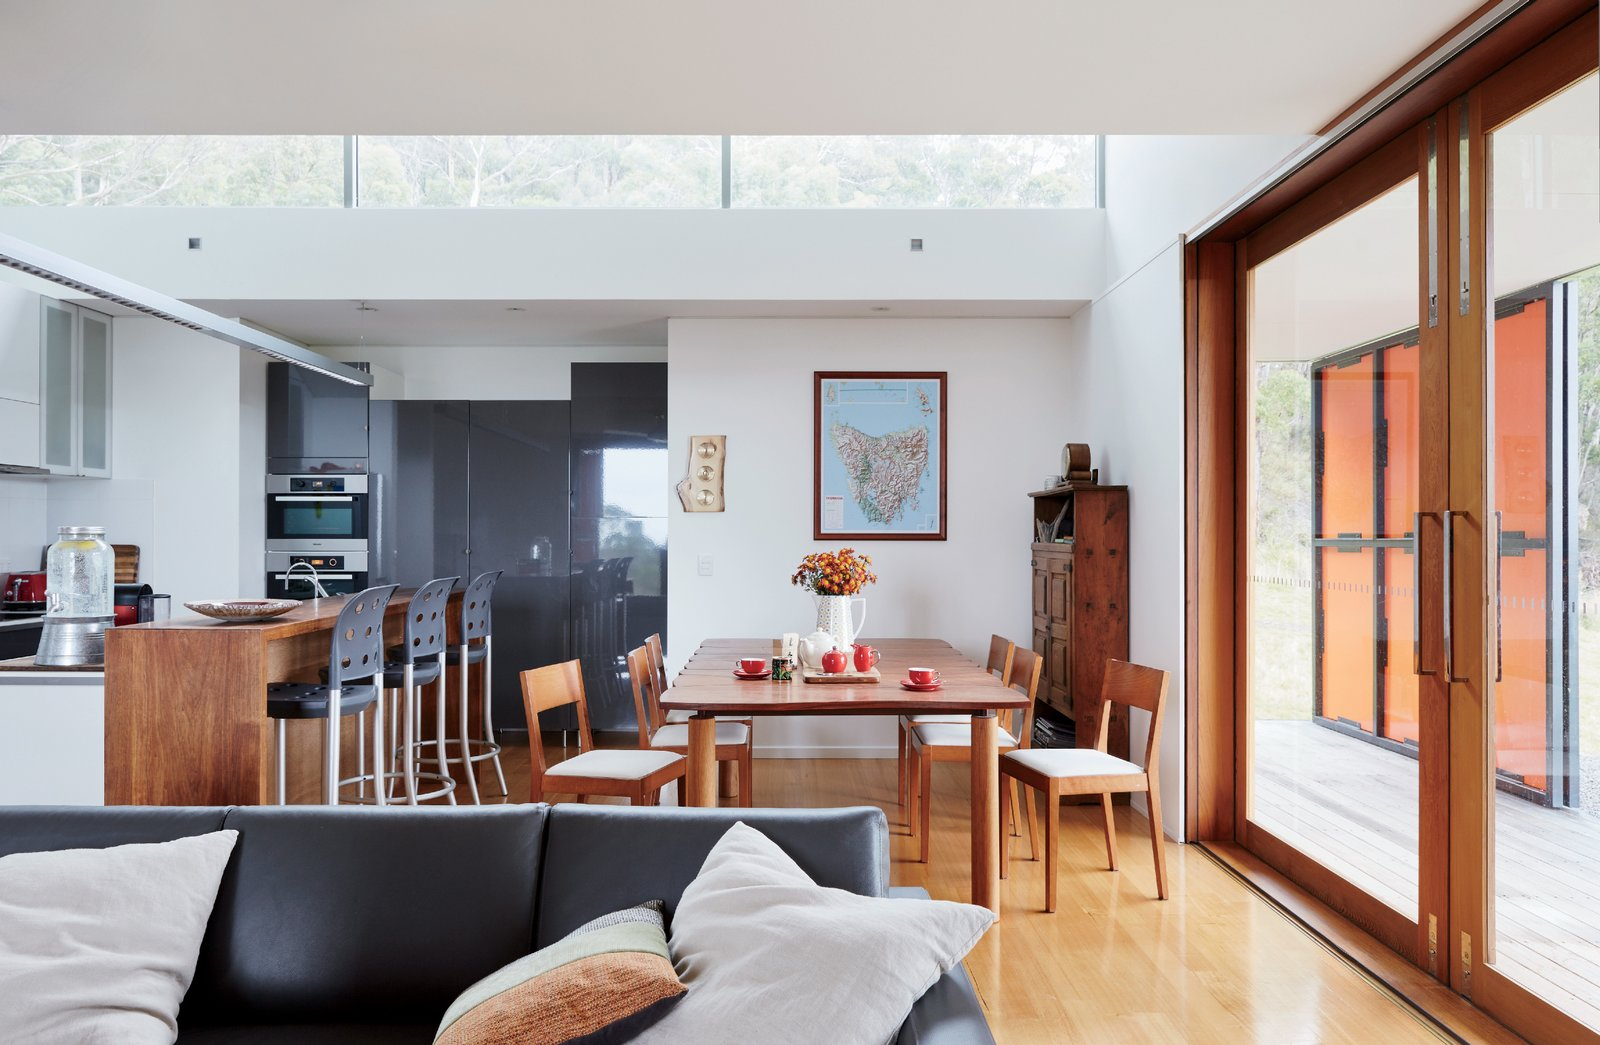 The Tasmanian blackwood dining table is by Mark Bishop, and the sofa is from King Furniture.  Photo 7 of 10 in An Off-the-Grid Prefab that Combines Open Plan Living with Rugged Durability